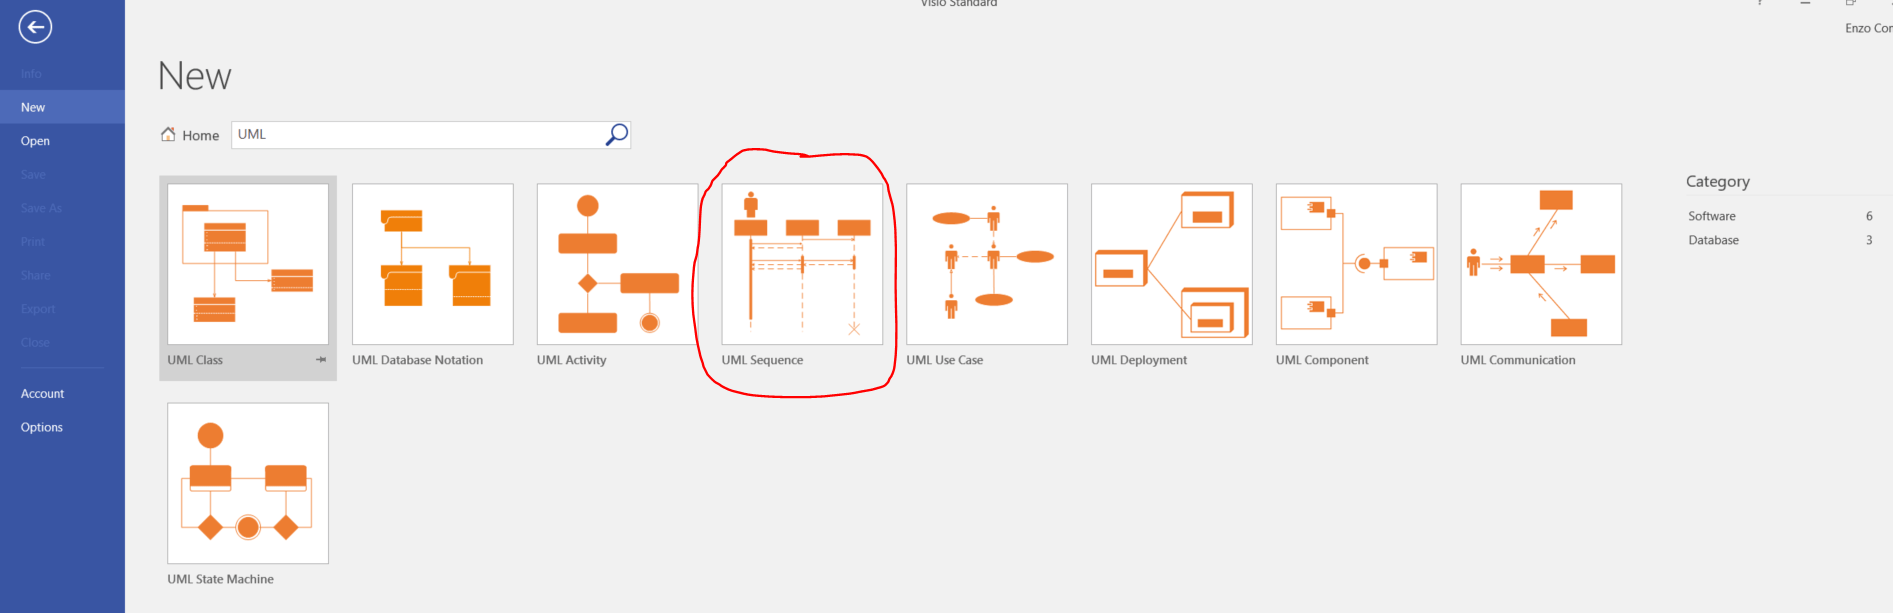 hight resolution of searching for uml diagram templates in visio 2016 standard